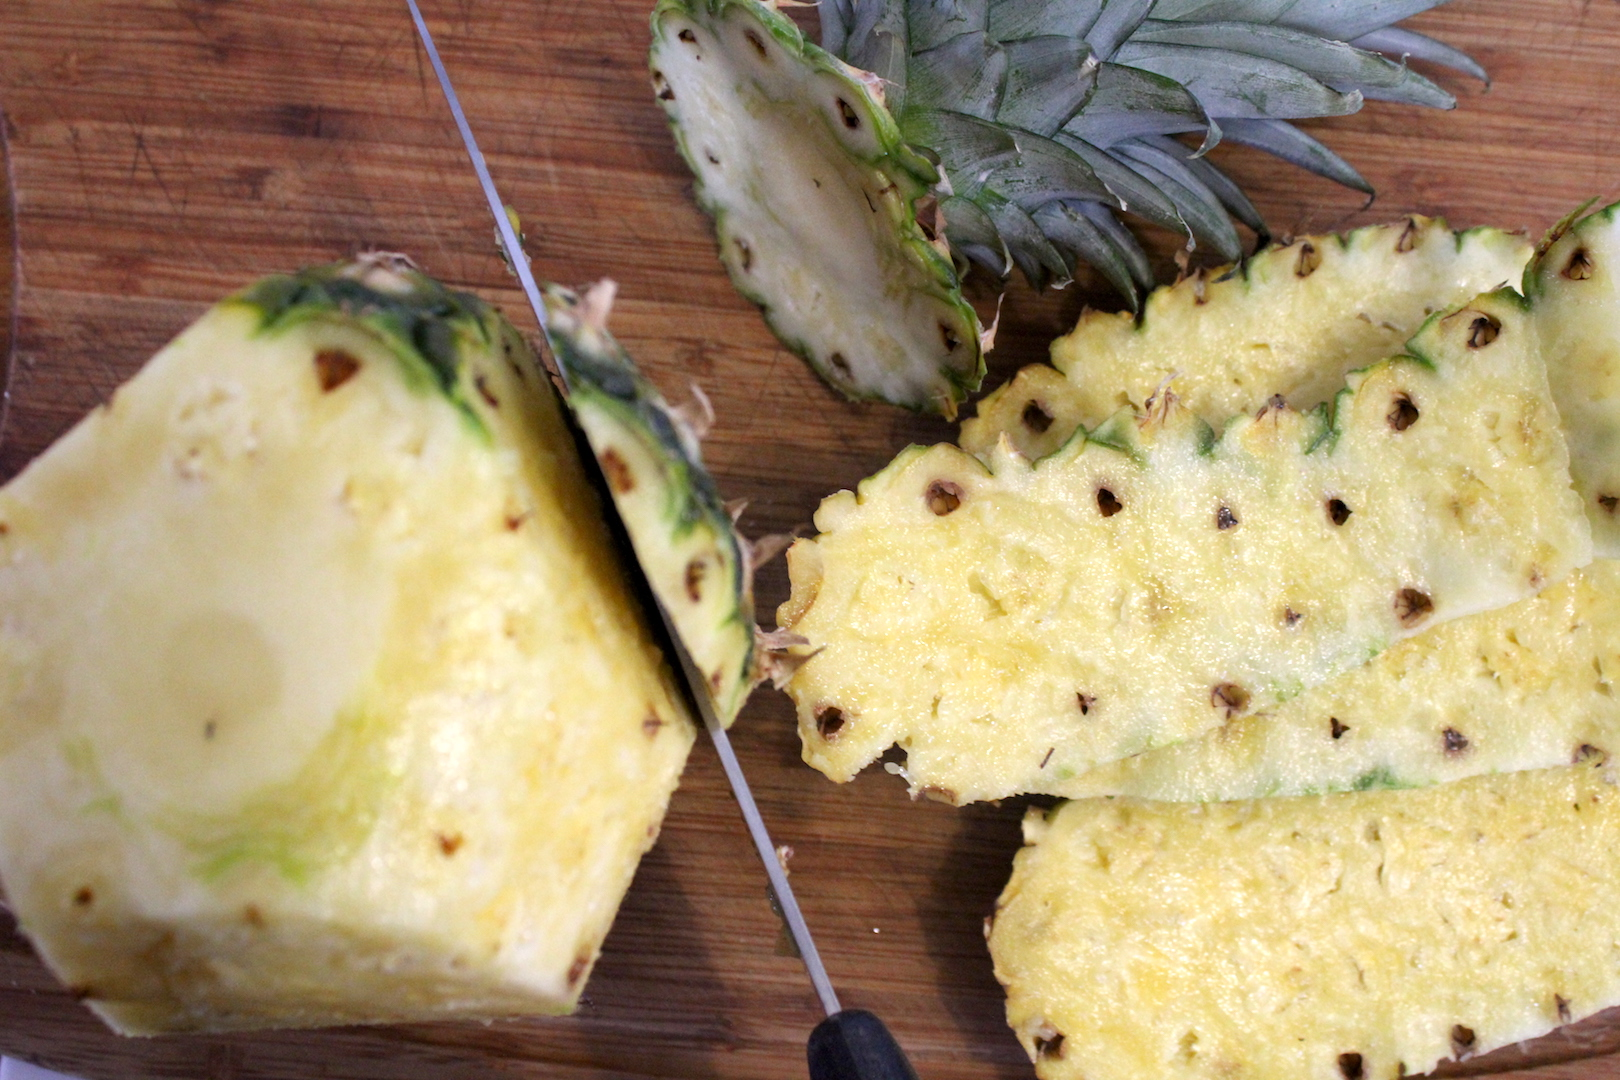 Peeling Pineapple for Canning